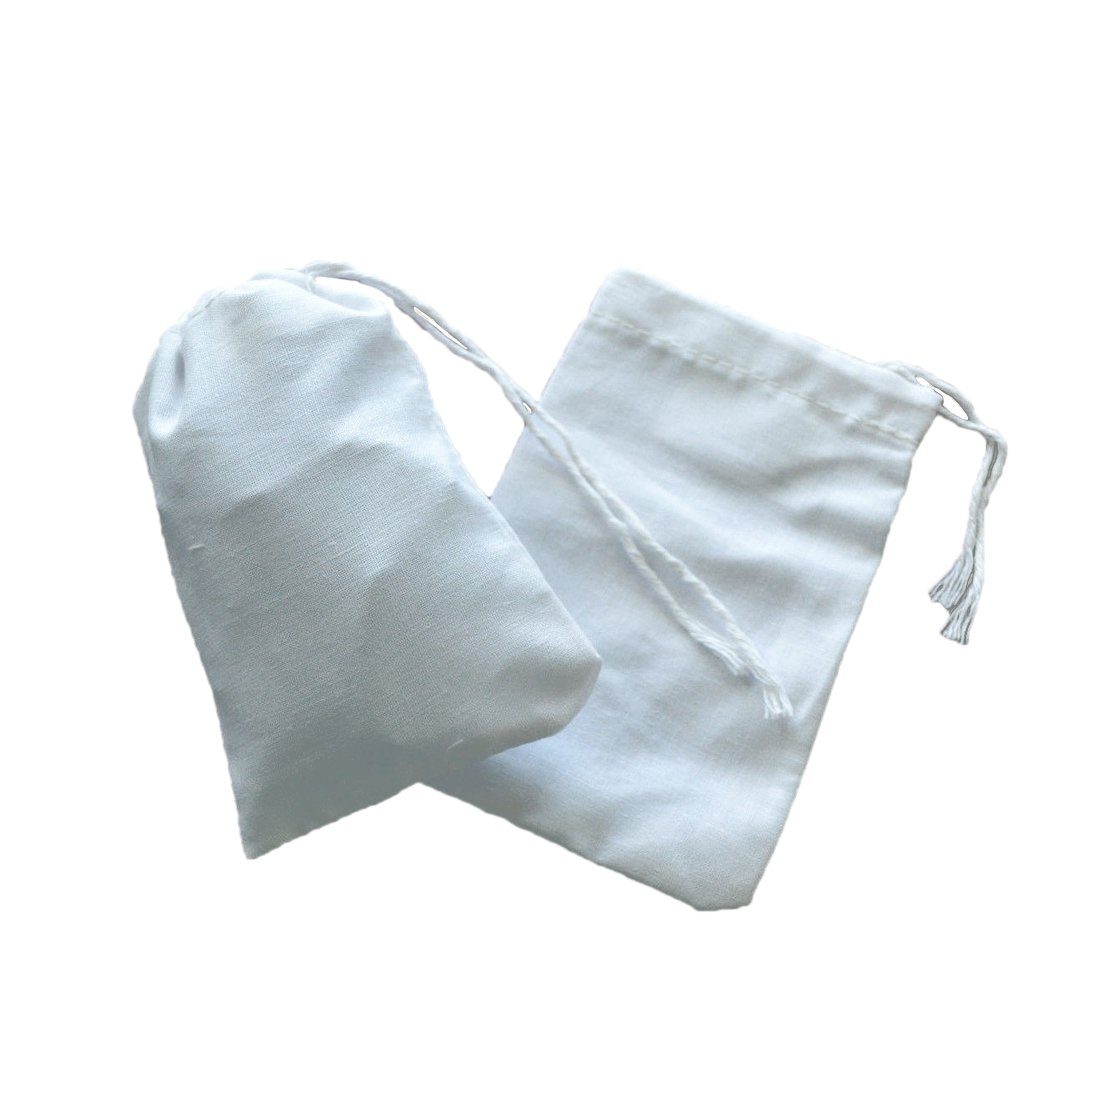 100 Pcs Non-Woven Muslin Drawstring Bags Strainer Tea Spice Separate Filter Bag Luwu-Store